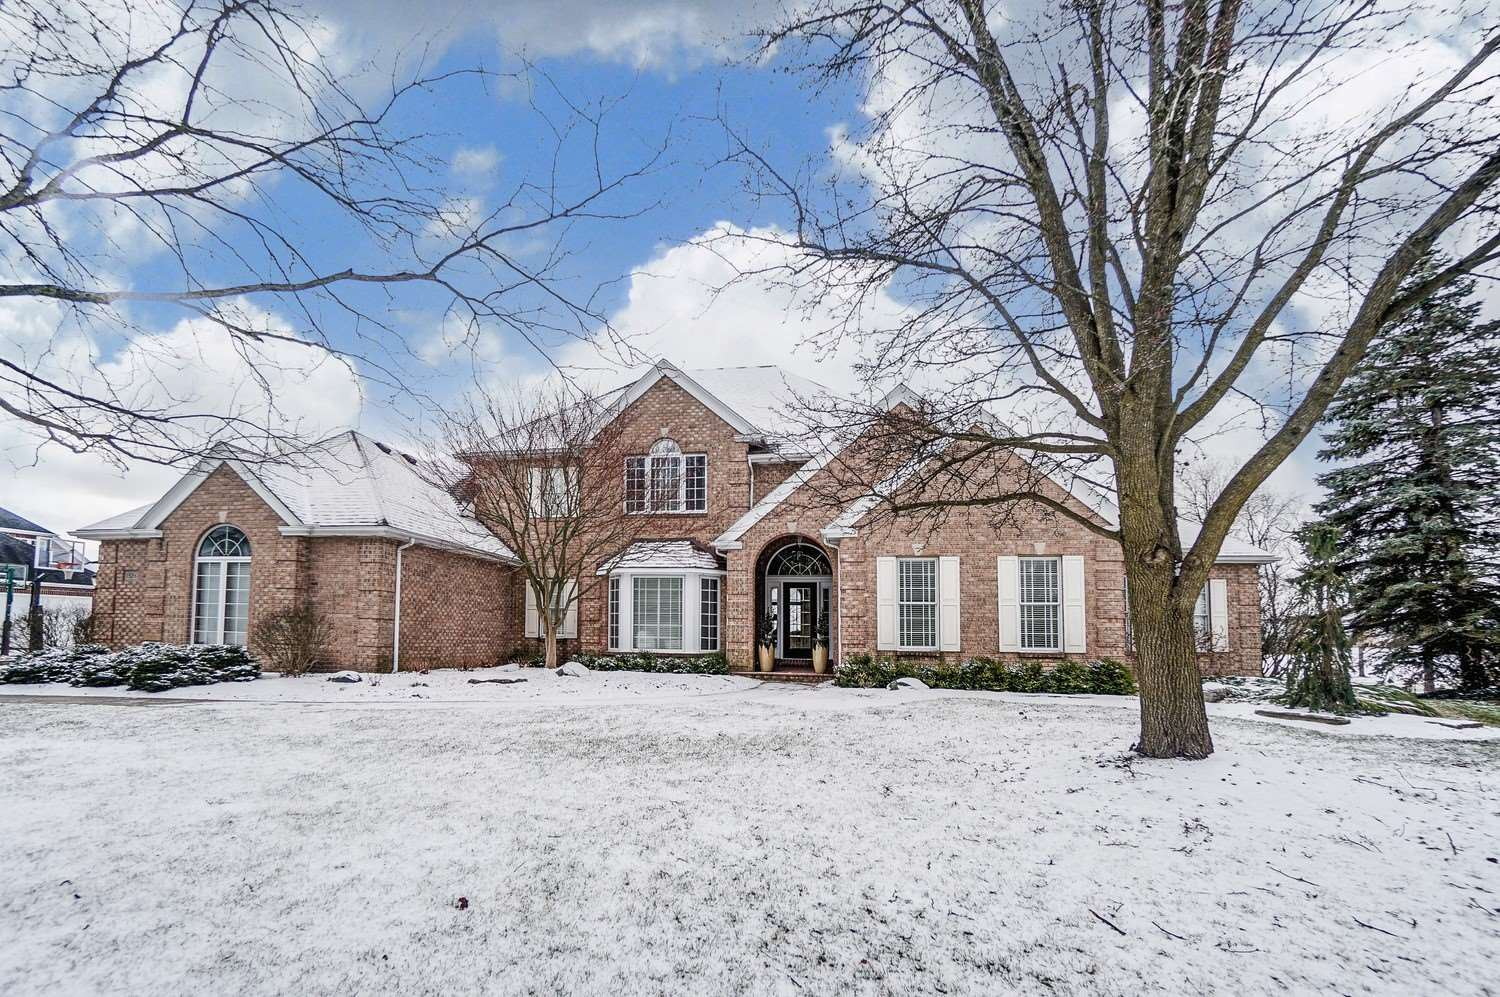 1326 Turnberry Lane, Fort Wayne, IN 46814 - #: 202102267